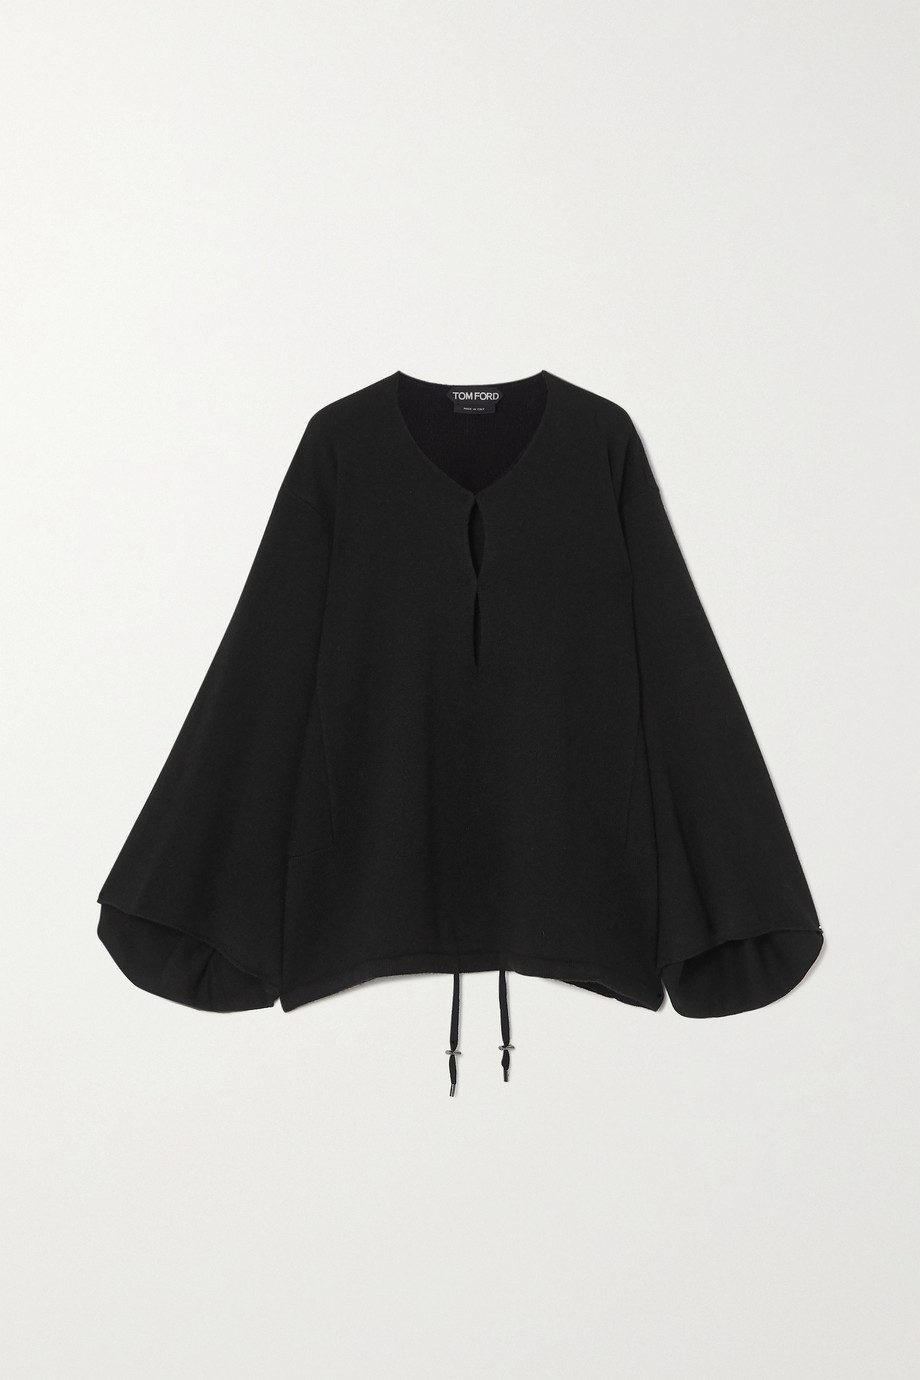 TOM FORD Cutout cashmere sweater